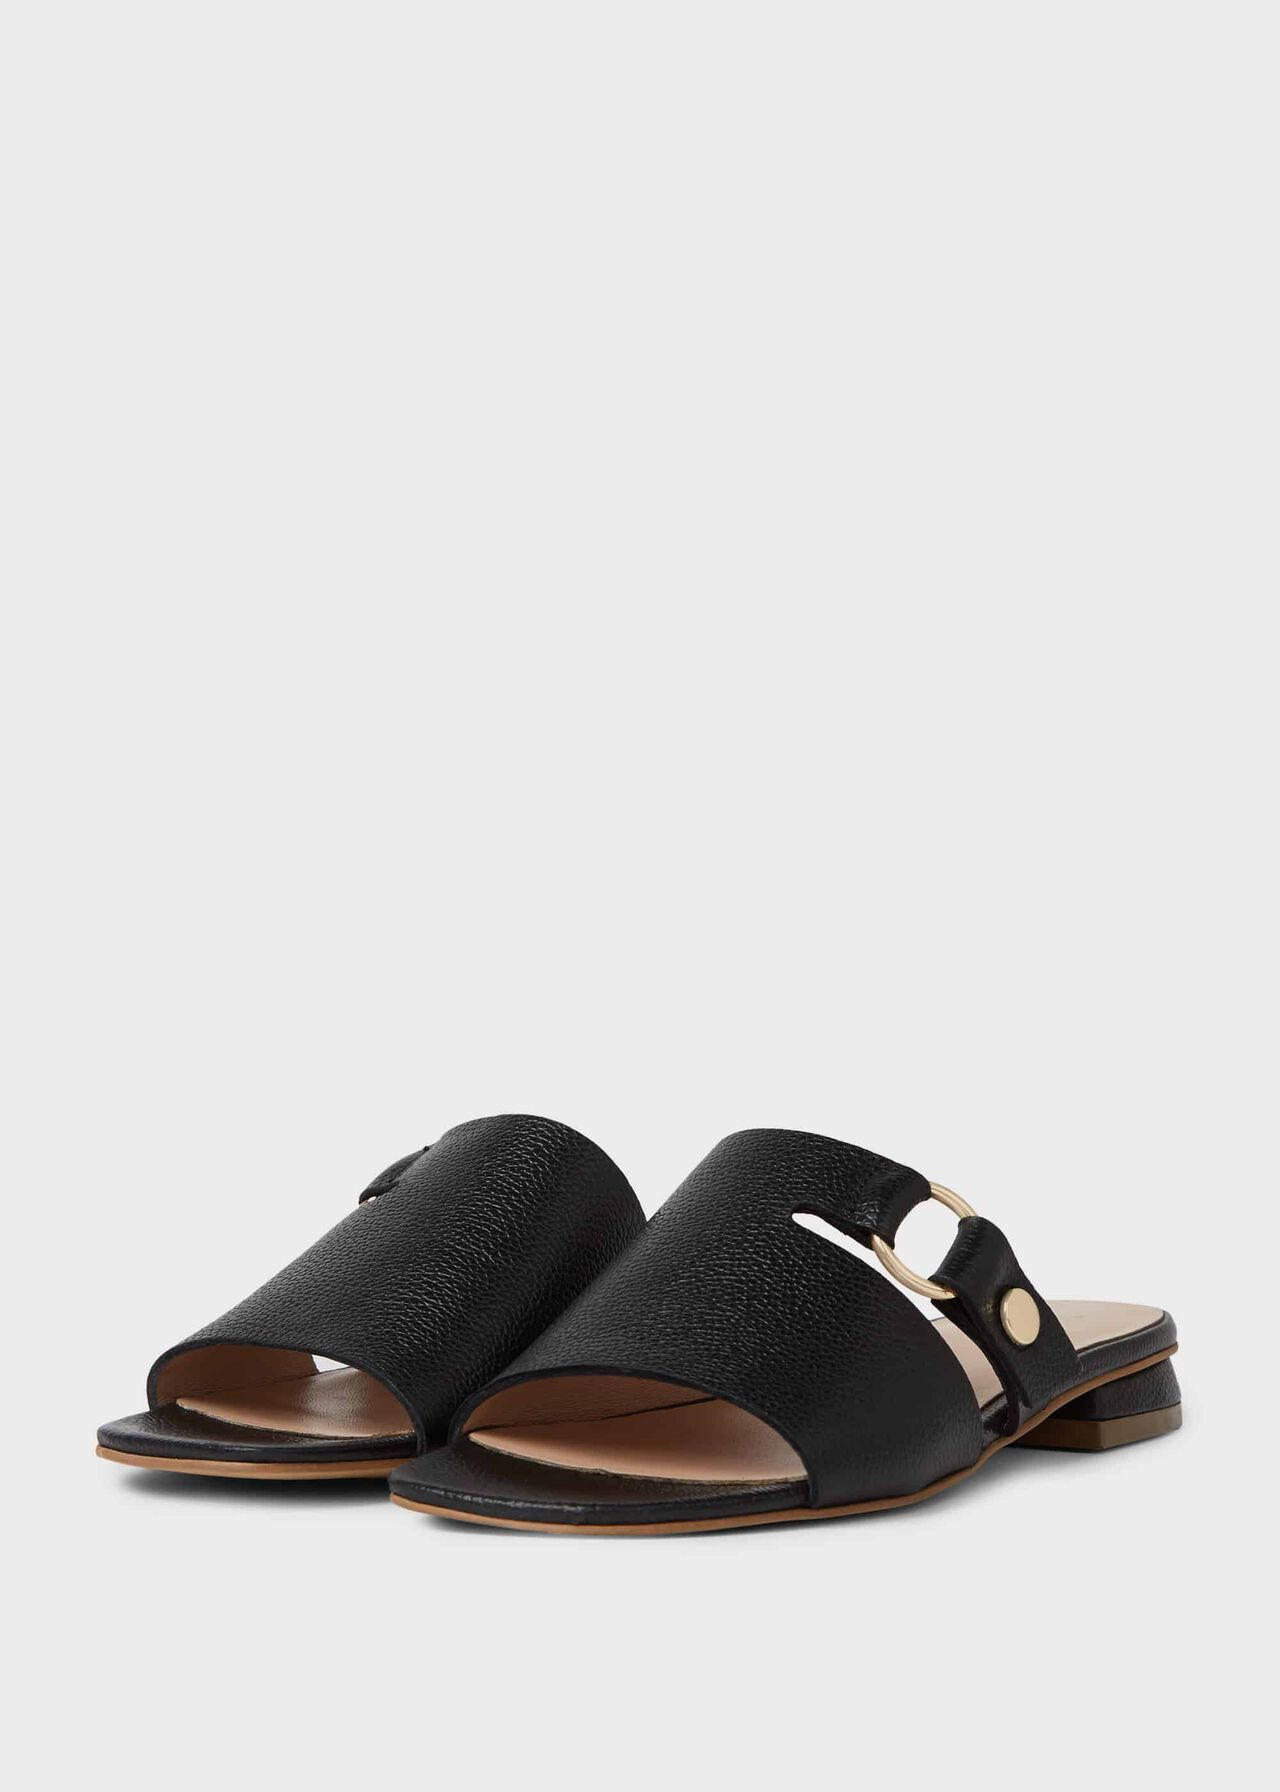 Lily Leather Sandals Black